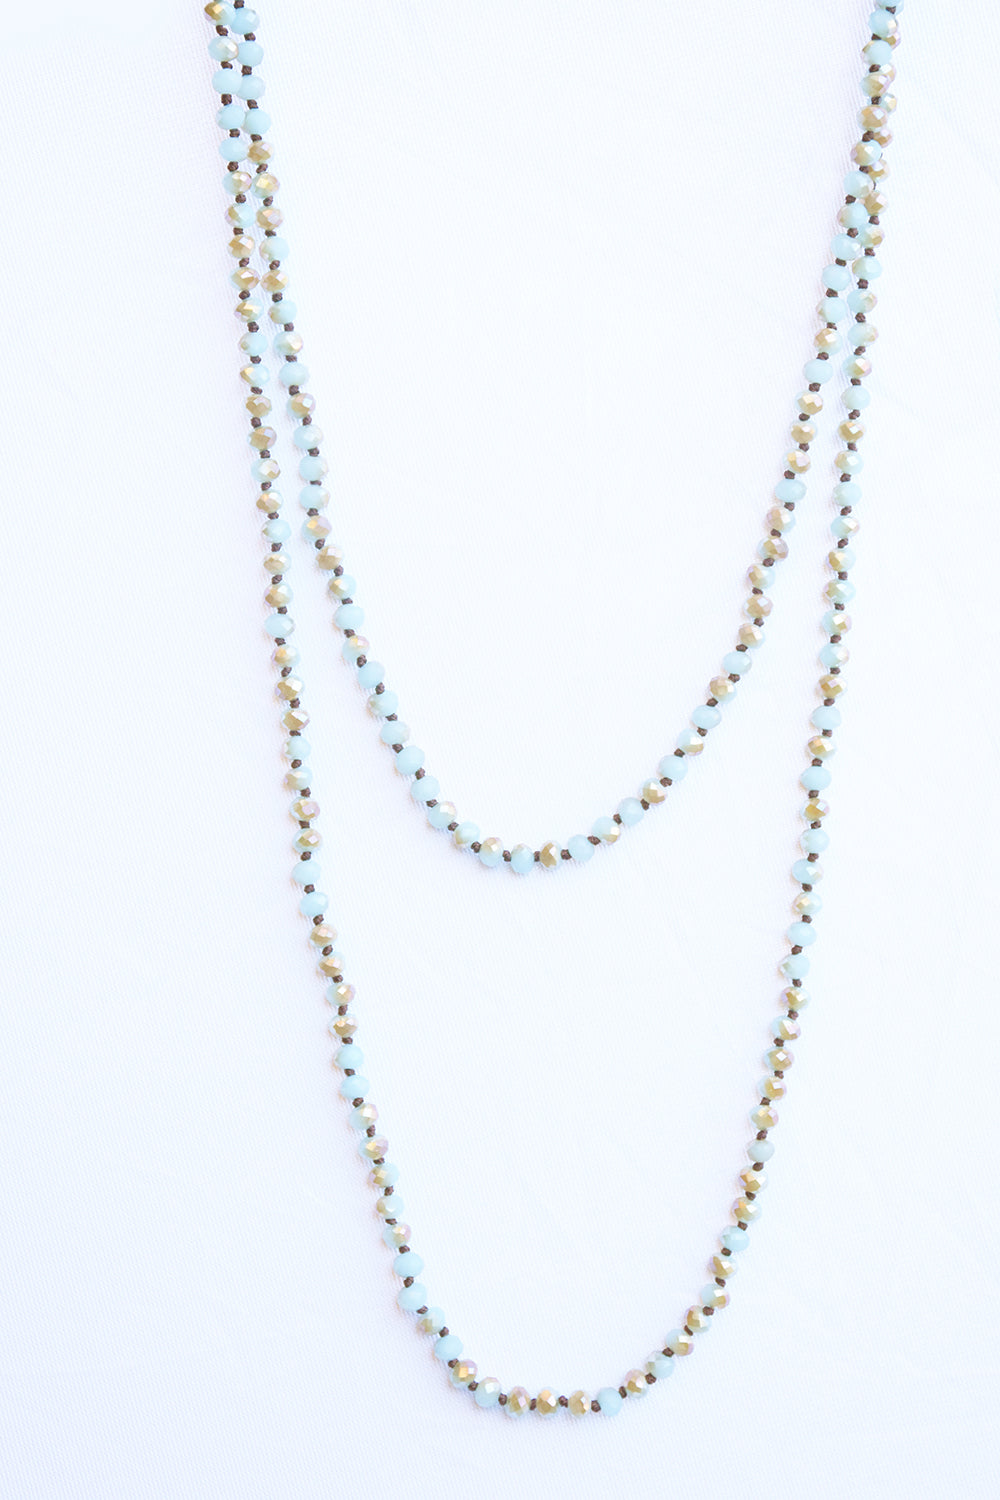 Glass Bead Necklace - Mint